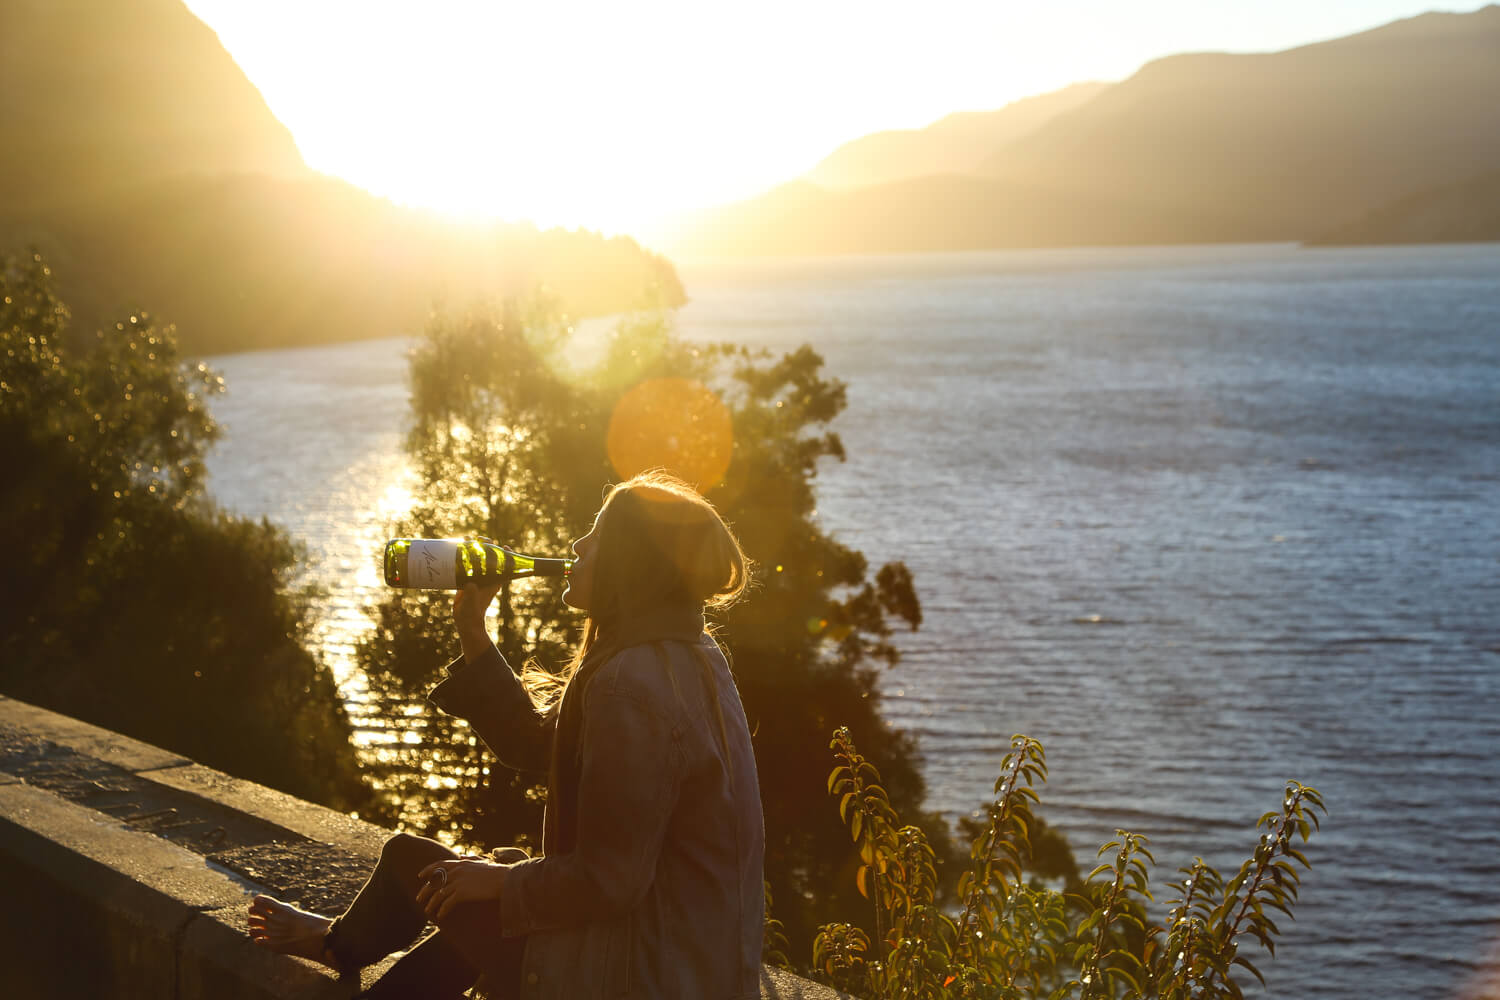 A woman drinks from a bottle of wine in front of a lake with the sun setting behind her on the Ruta de los 7 Lagos Patagonia